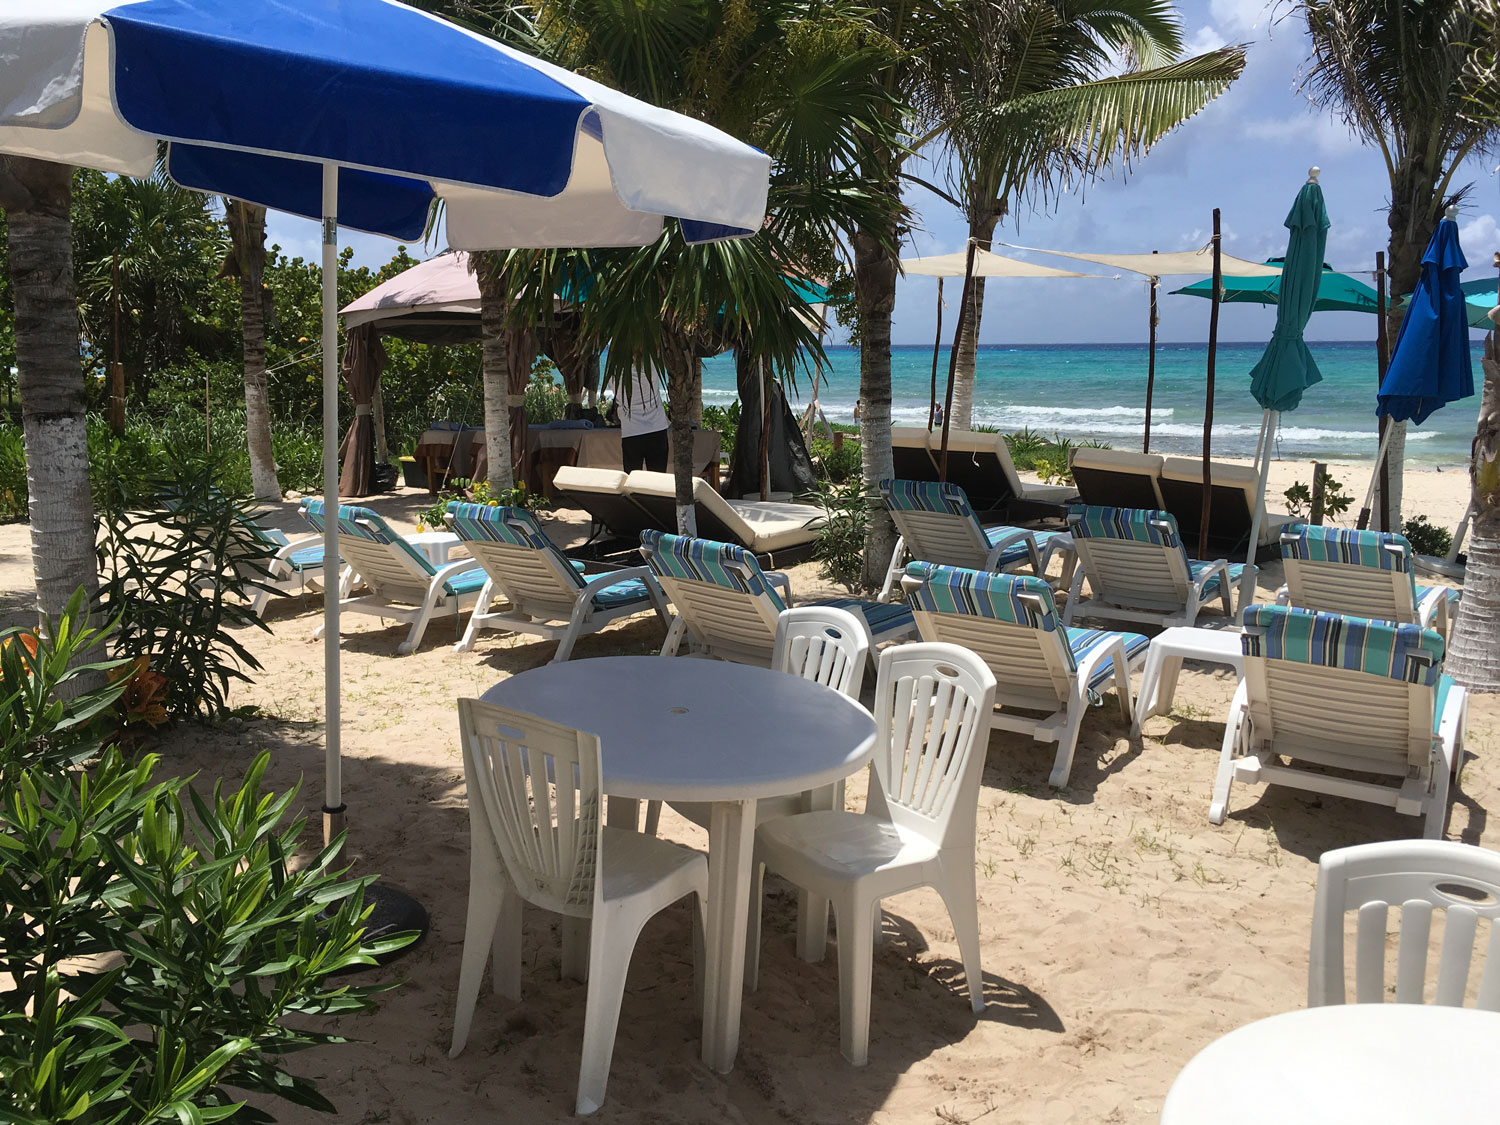 Beach chairs for rent.